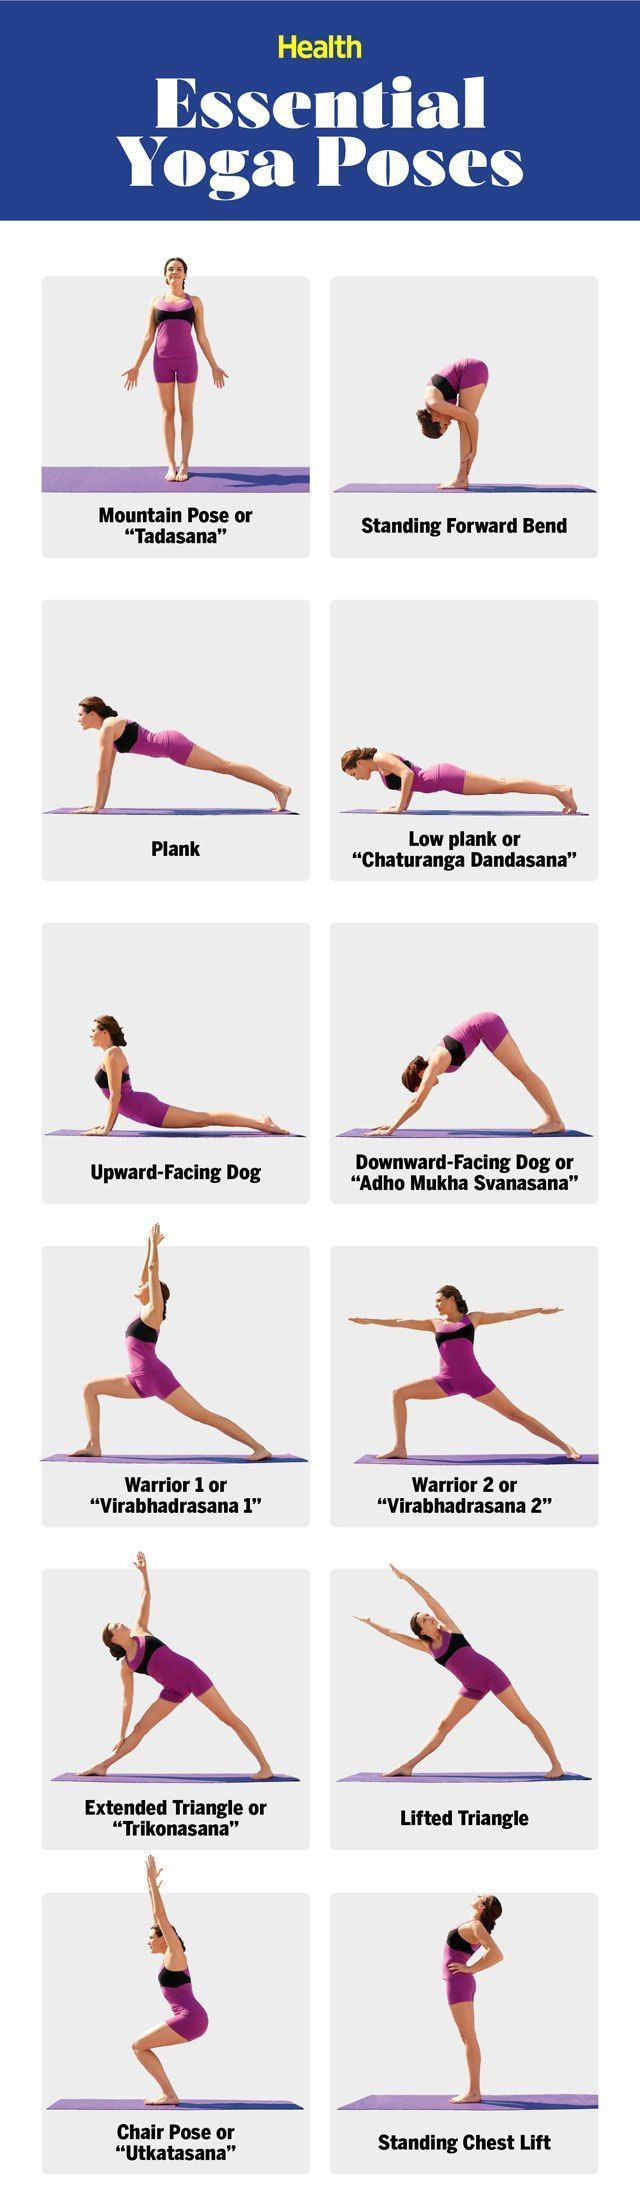 Essential yoga poses everyone should know: Here are 23 terms you will probably hear within your first few yoga classes. | Health.com